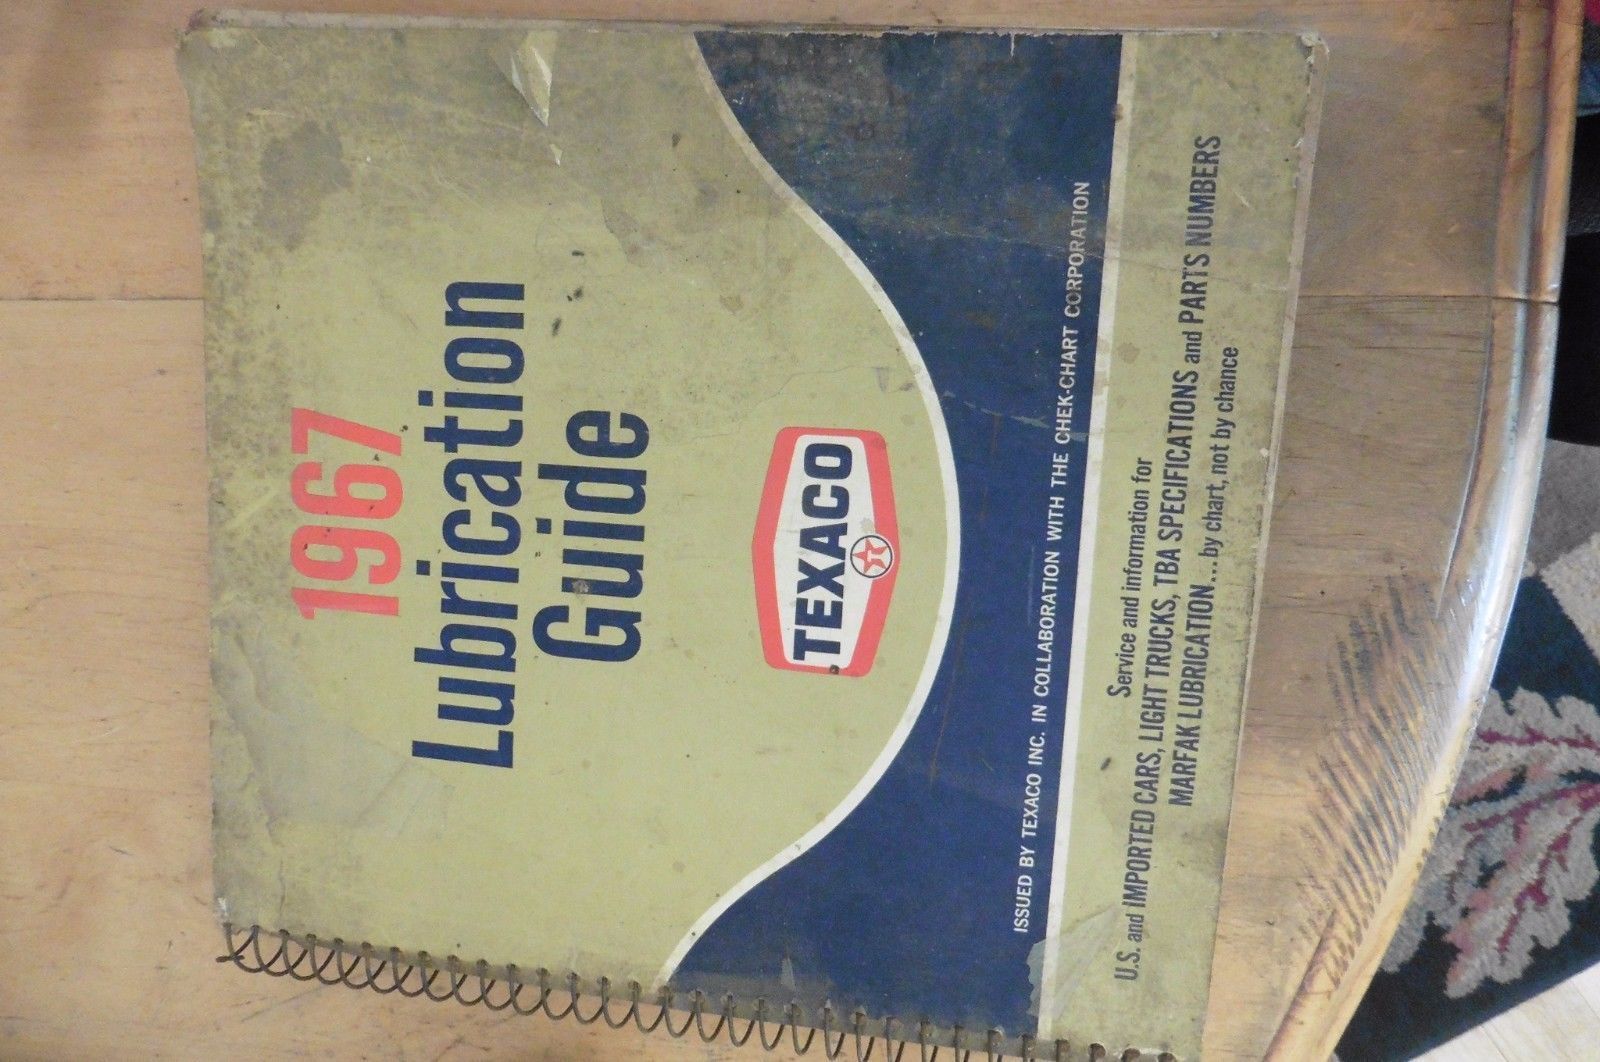 1967 Lubrication Guide Texaco Vintage Manual automotive service - $11.29